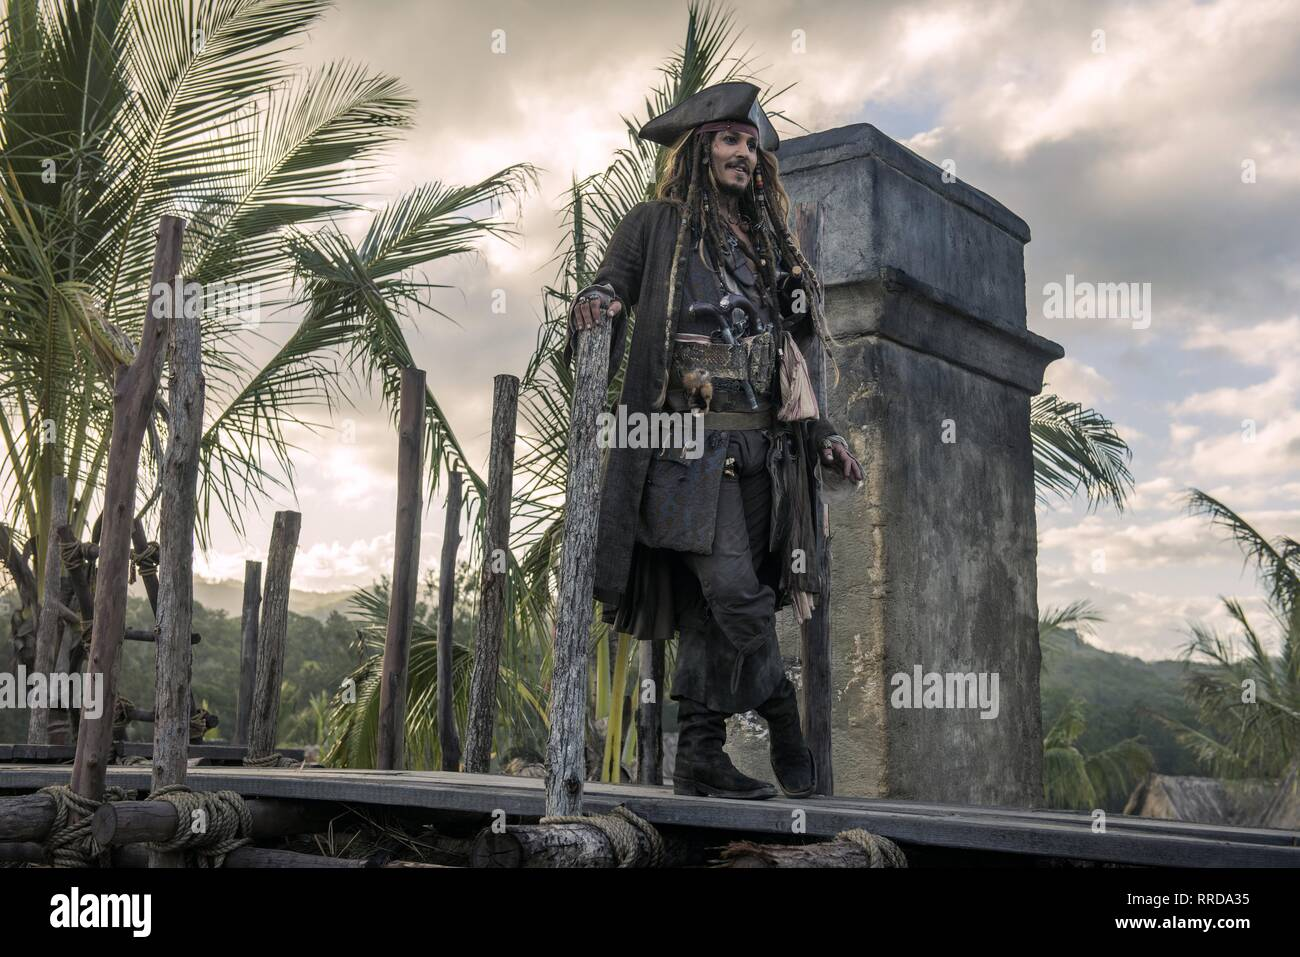 PIRATES OF THE CARIBBEAN: DEAD MEN TELL NO TALES, JOHNNY DEPP, 2017 - Stock Image